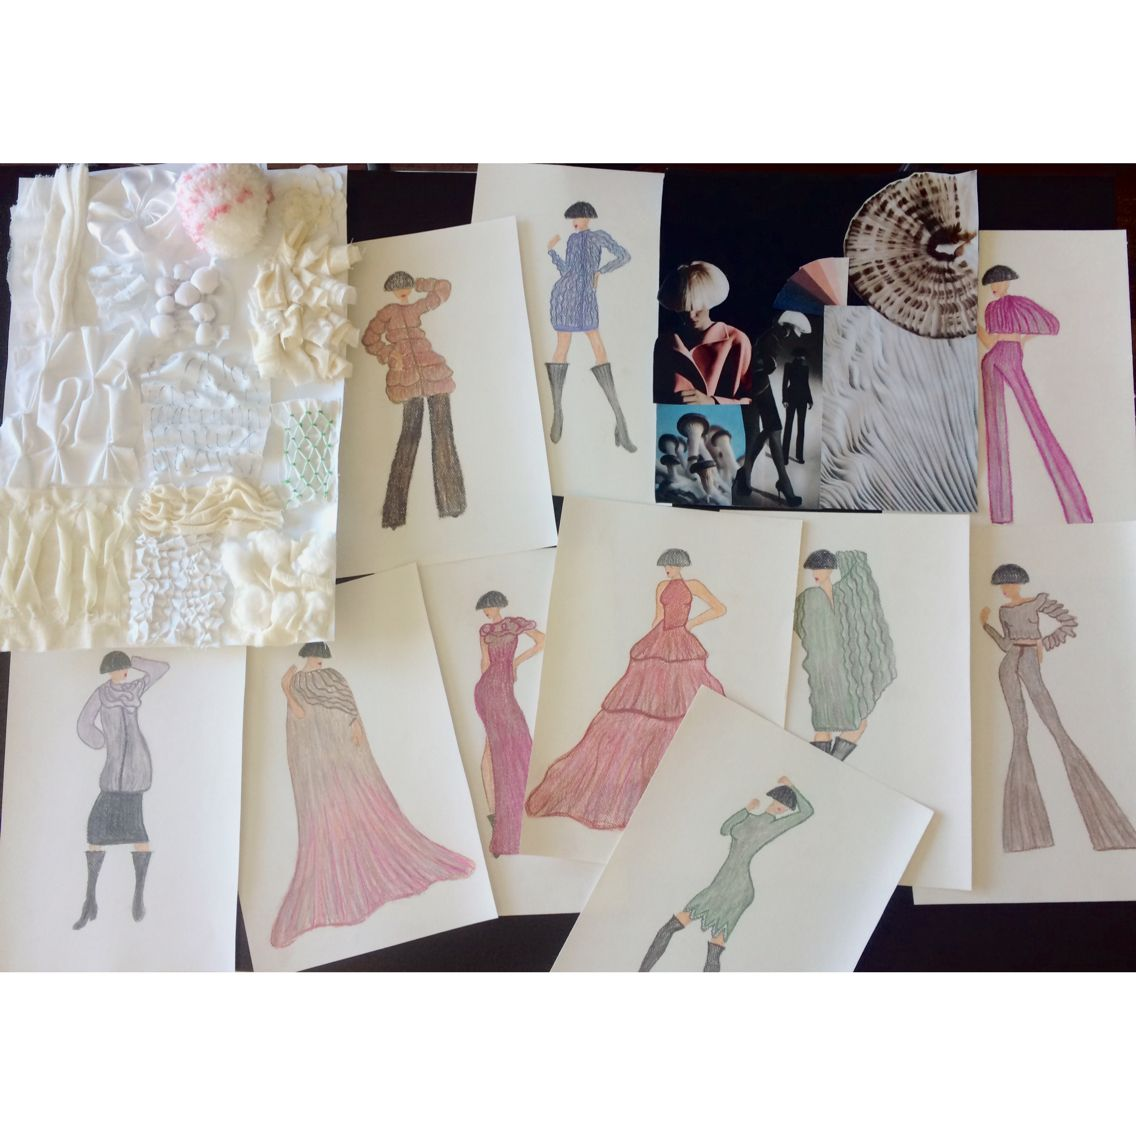 How To Make Fashion Design Collection Fashiondesign Moodboard Mushrooms Manipulation Sketch Love Mod Fashion Design Collection Mood Board Fashion Design